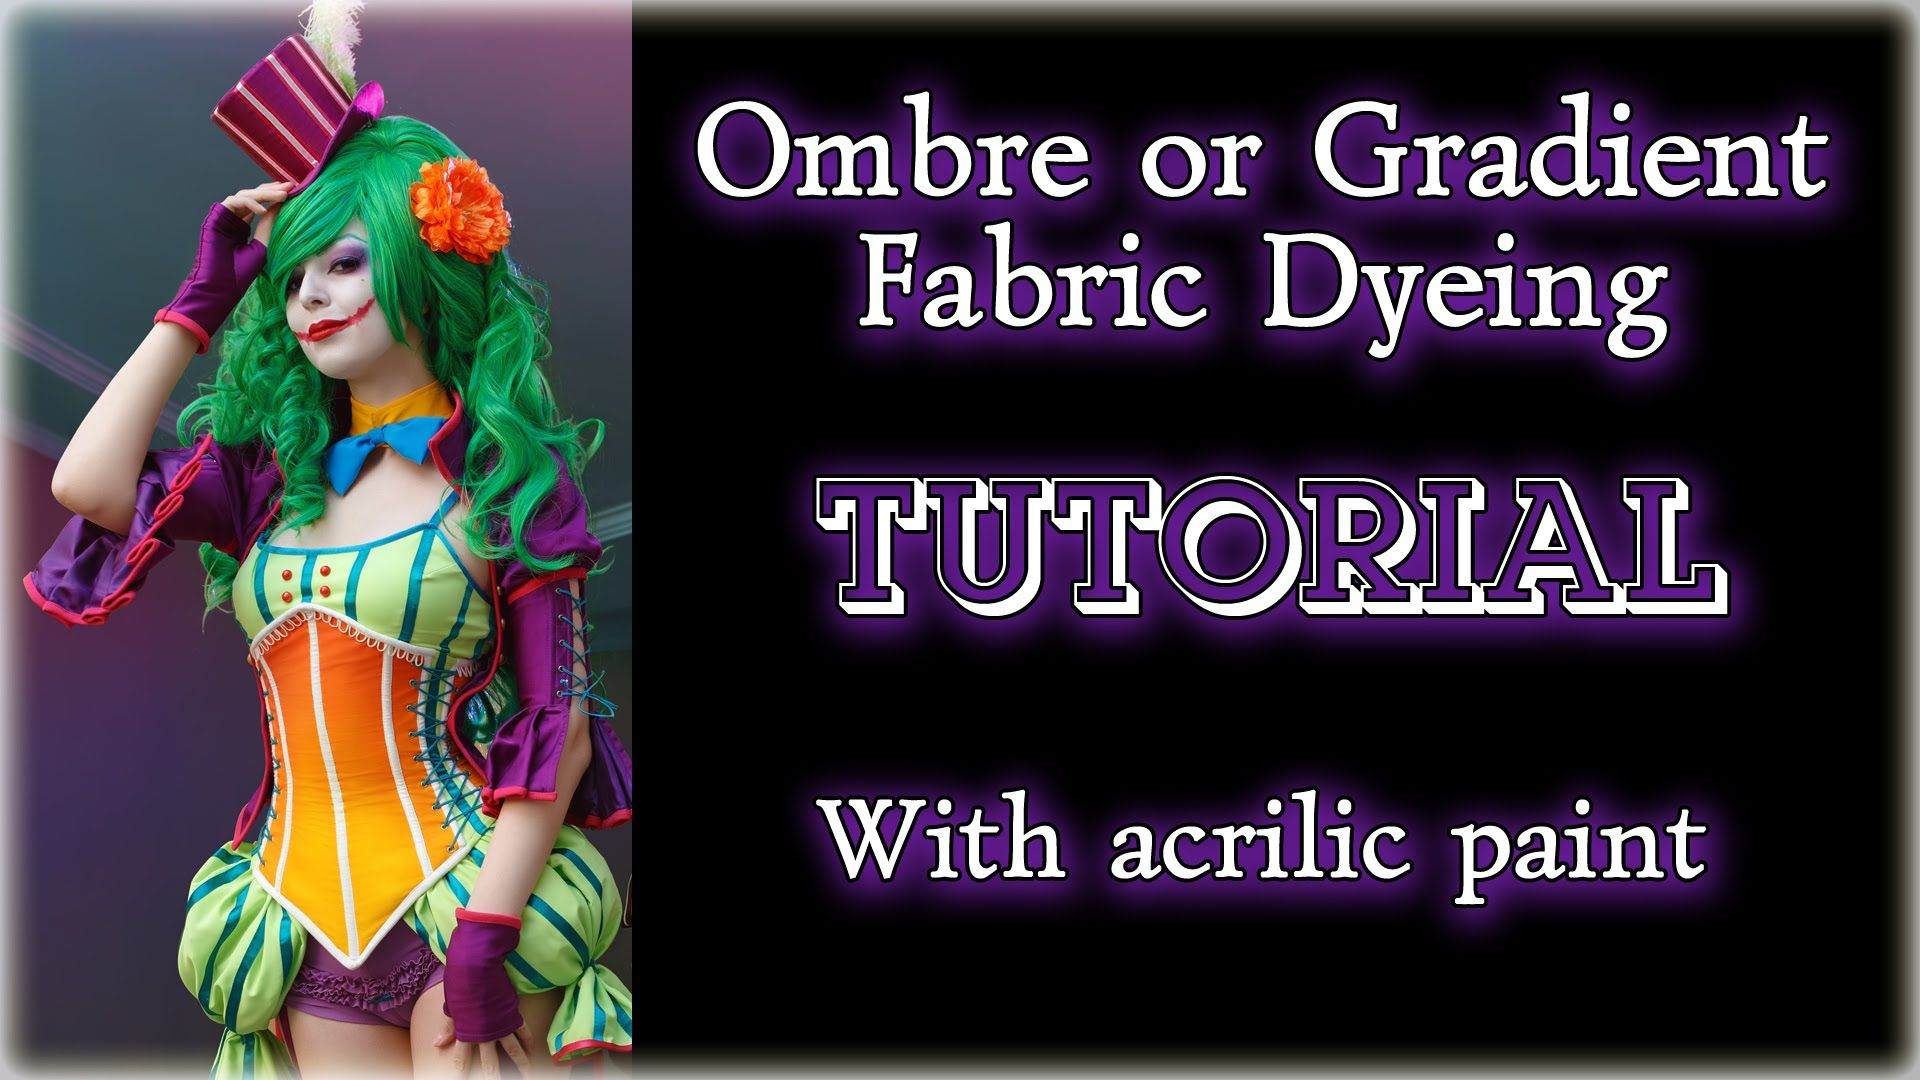 Ombre or Gradient Fabric Dyeing TUTORIAL (with acrilic paint) [Eng sub] - YouTube #dyeingtutorials